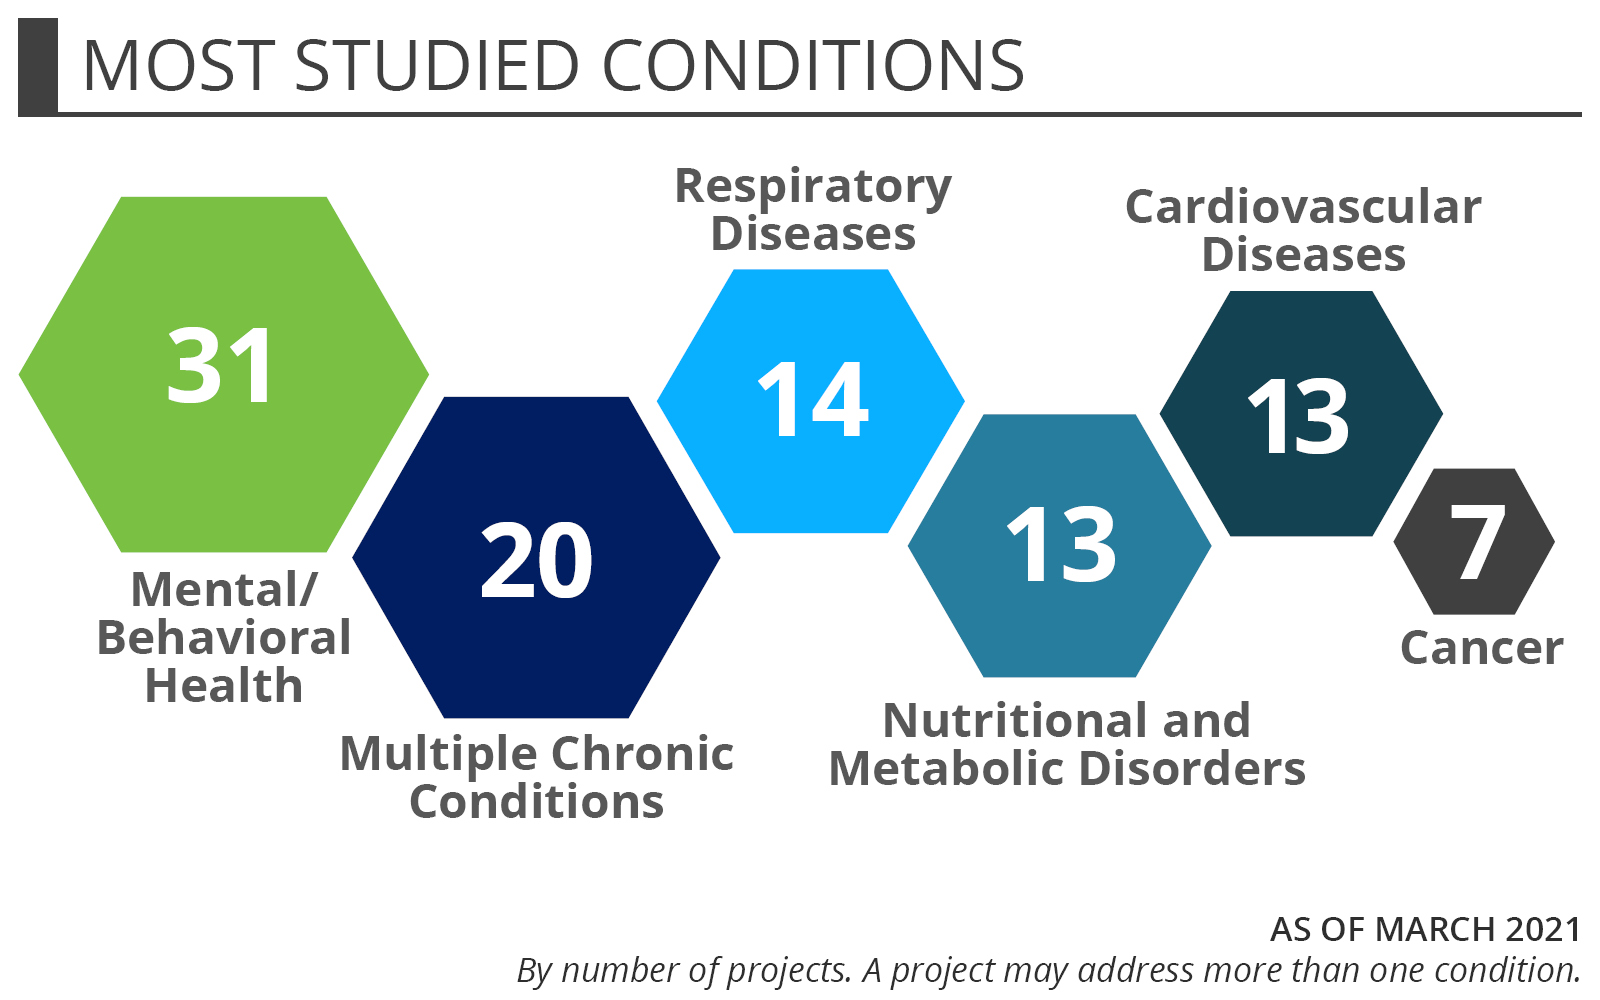 Community Health Workers - Most Studied Conditions